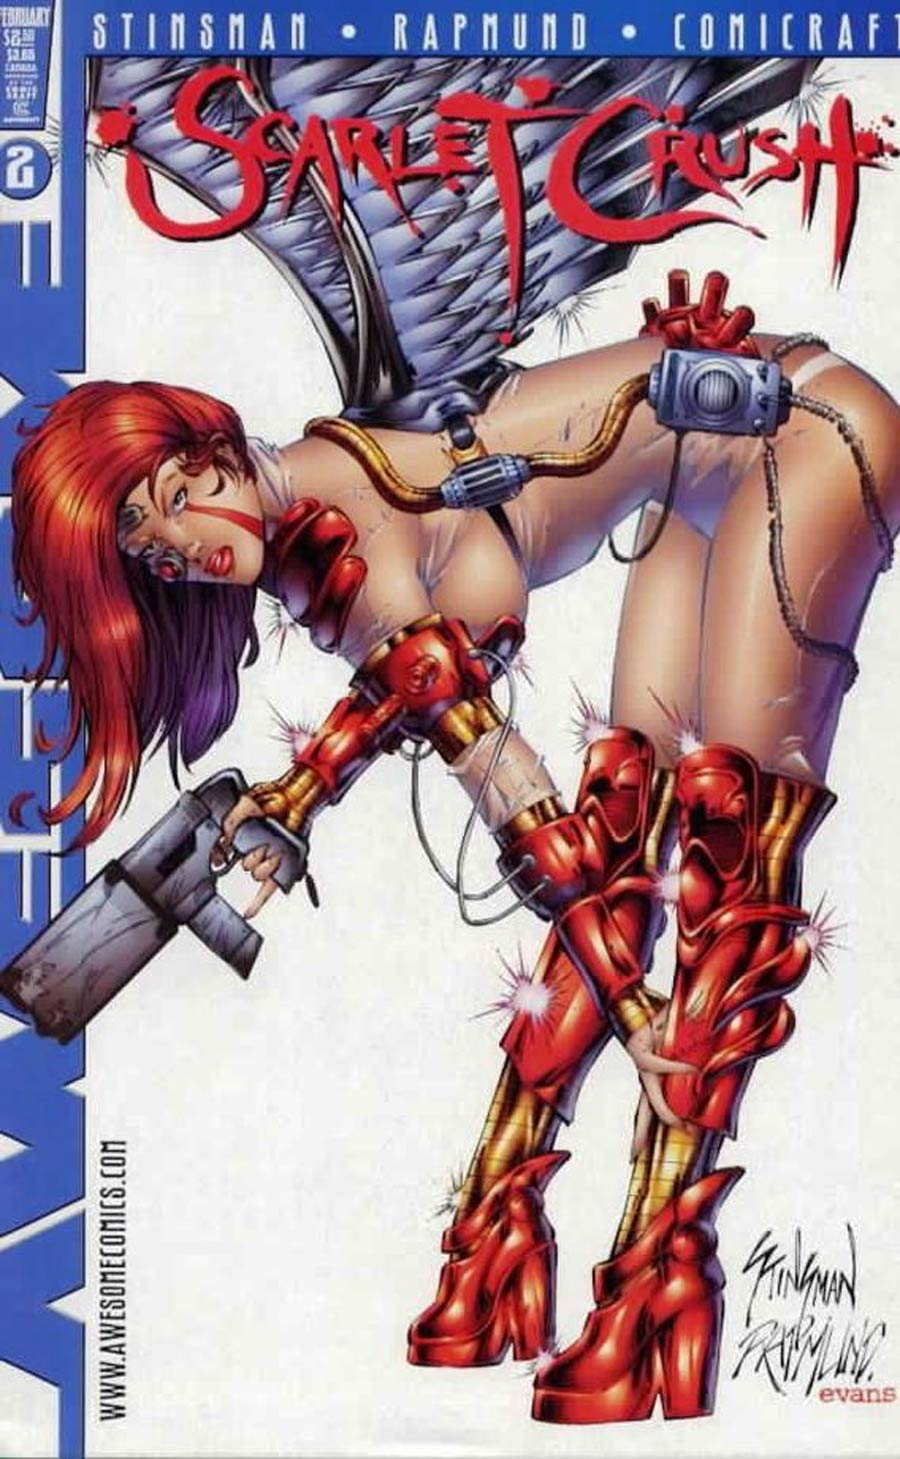 Scarlet Crush #2 Cover B Stinsman